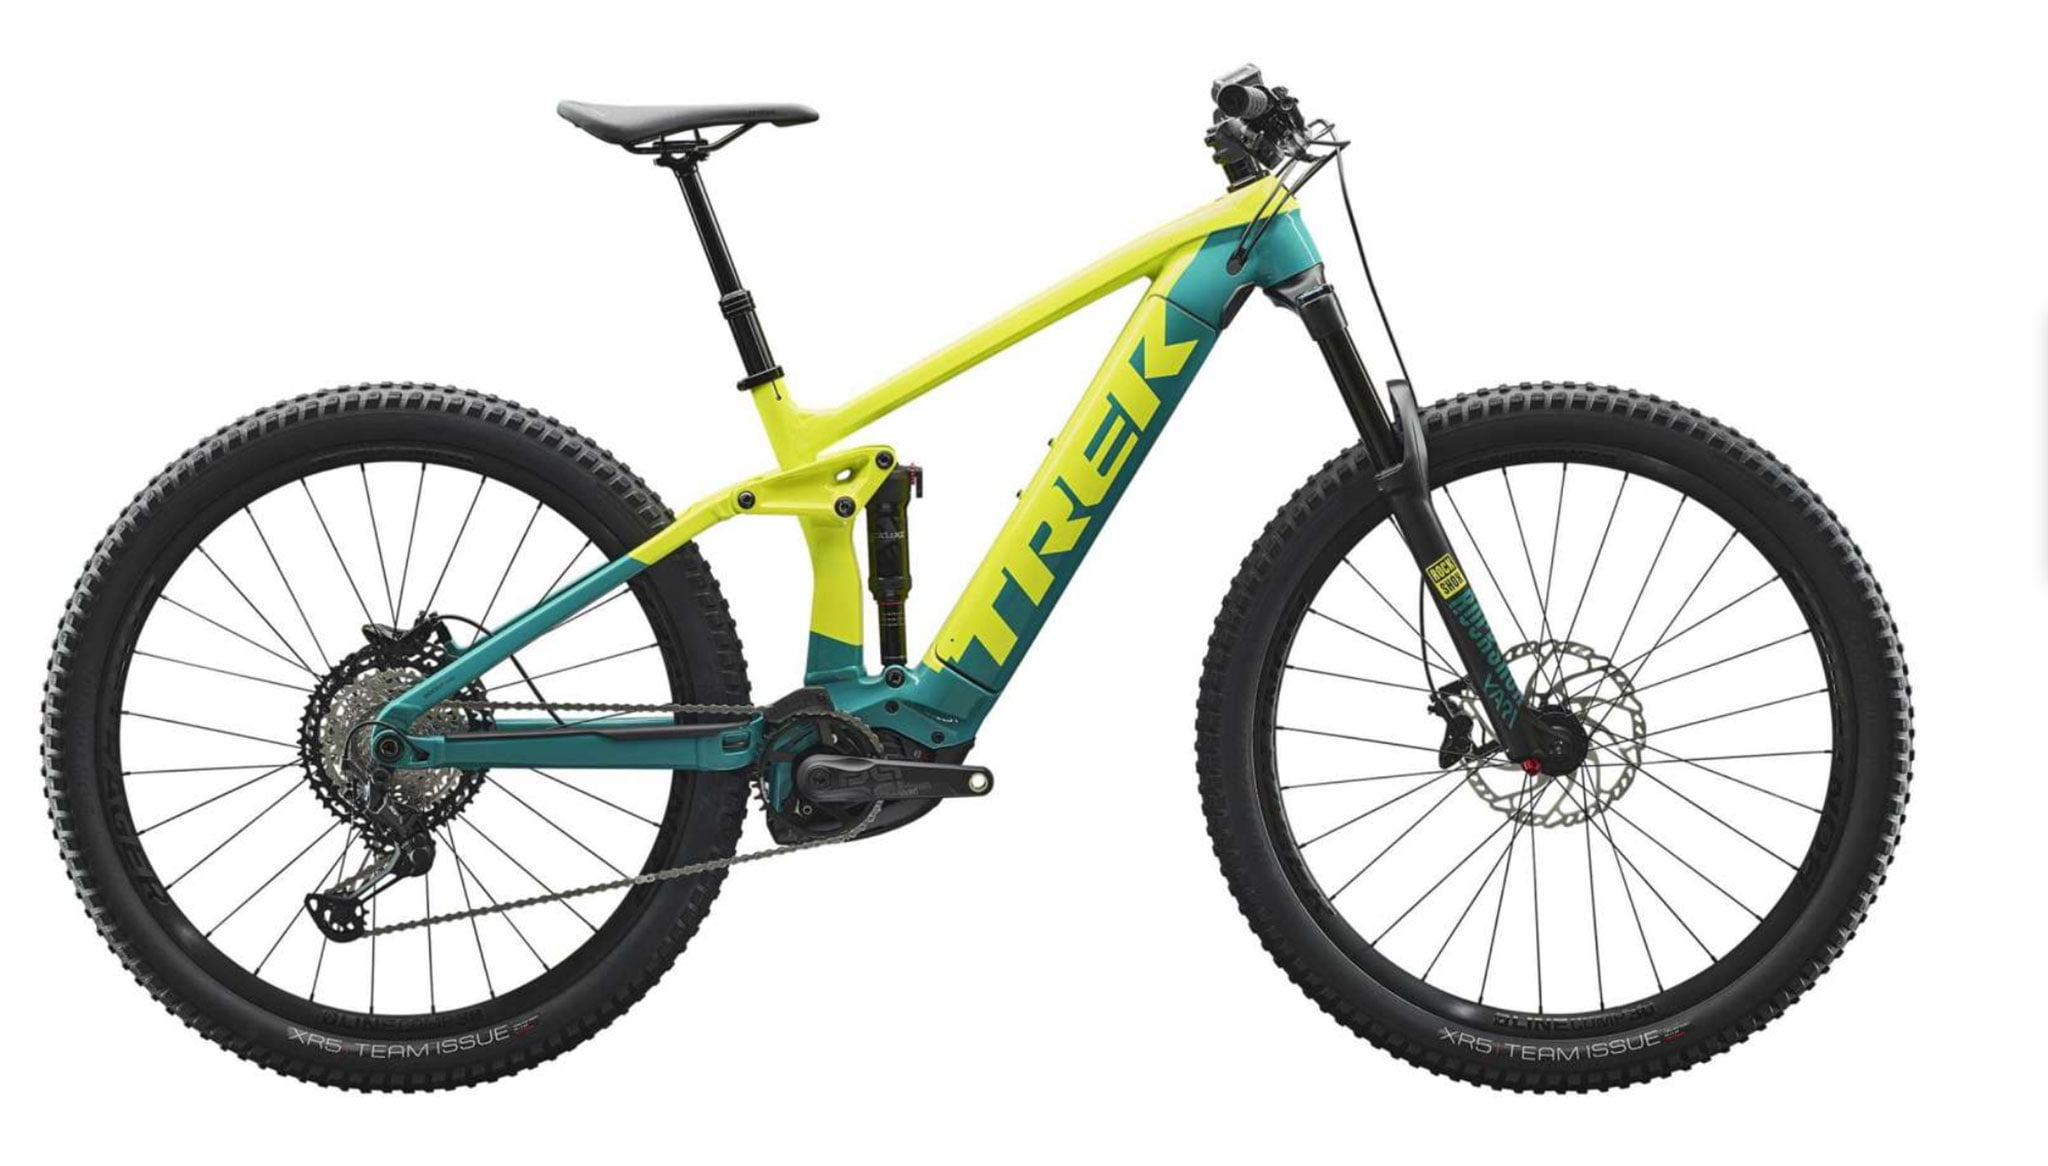 Trek Rail elektrisches Mountainbike - Extrem Cicles